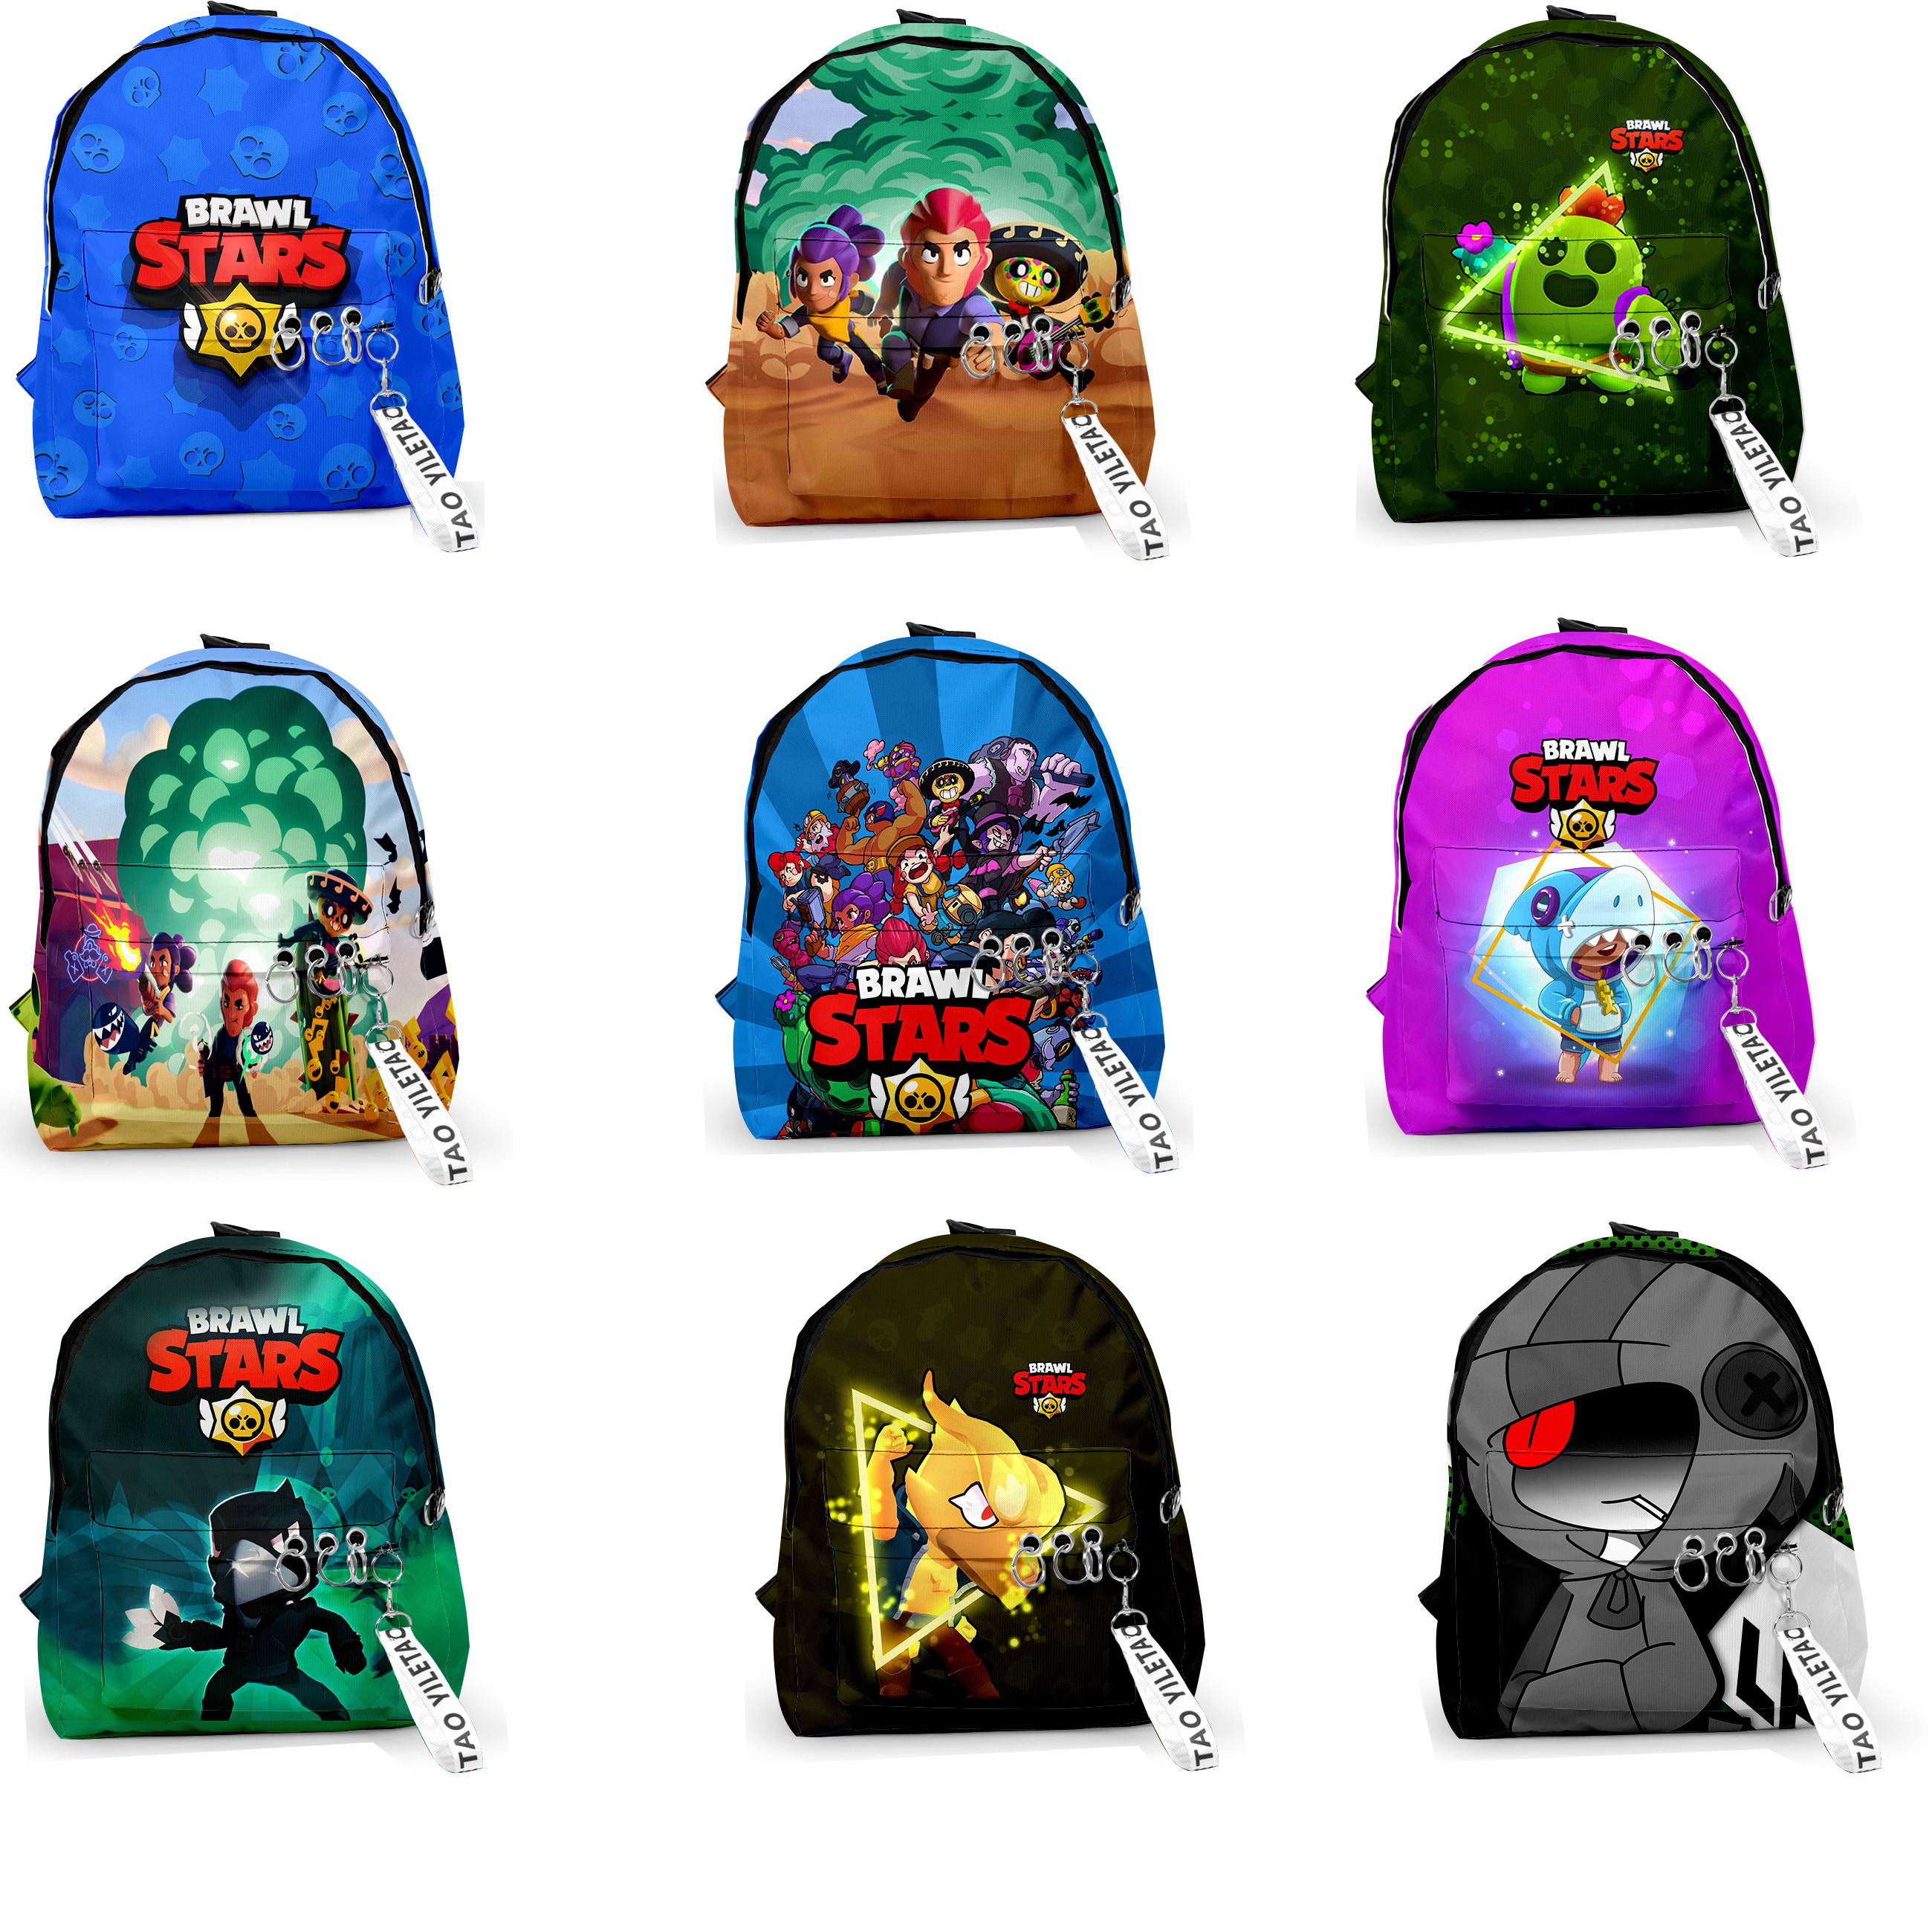 BrawlING Game Cartoon Star Heroes School Bag Figure Model Spike Shelly Leon PRIMO MORTIS Backpack Toys Gifts For Boys Girls Kids